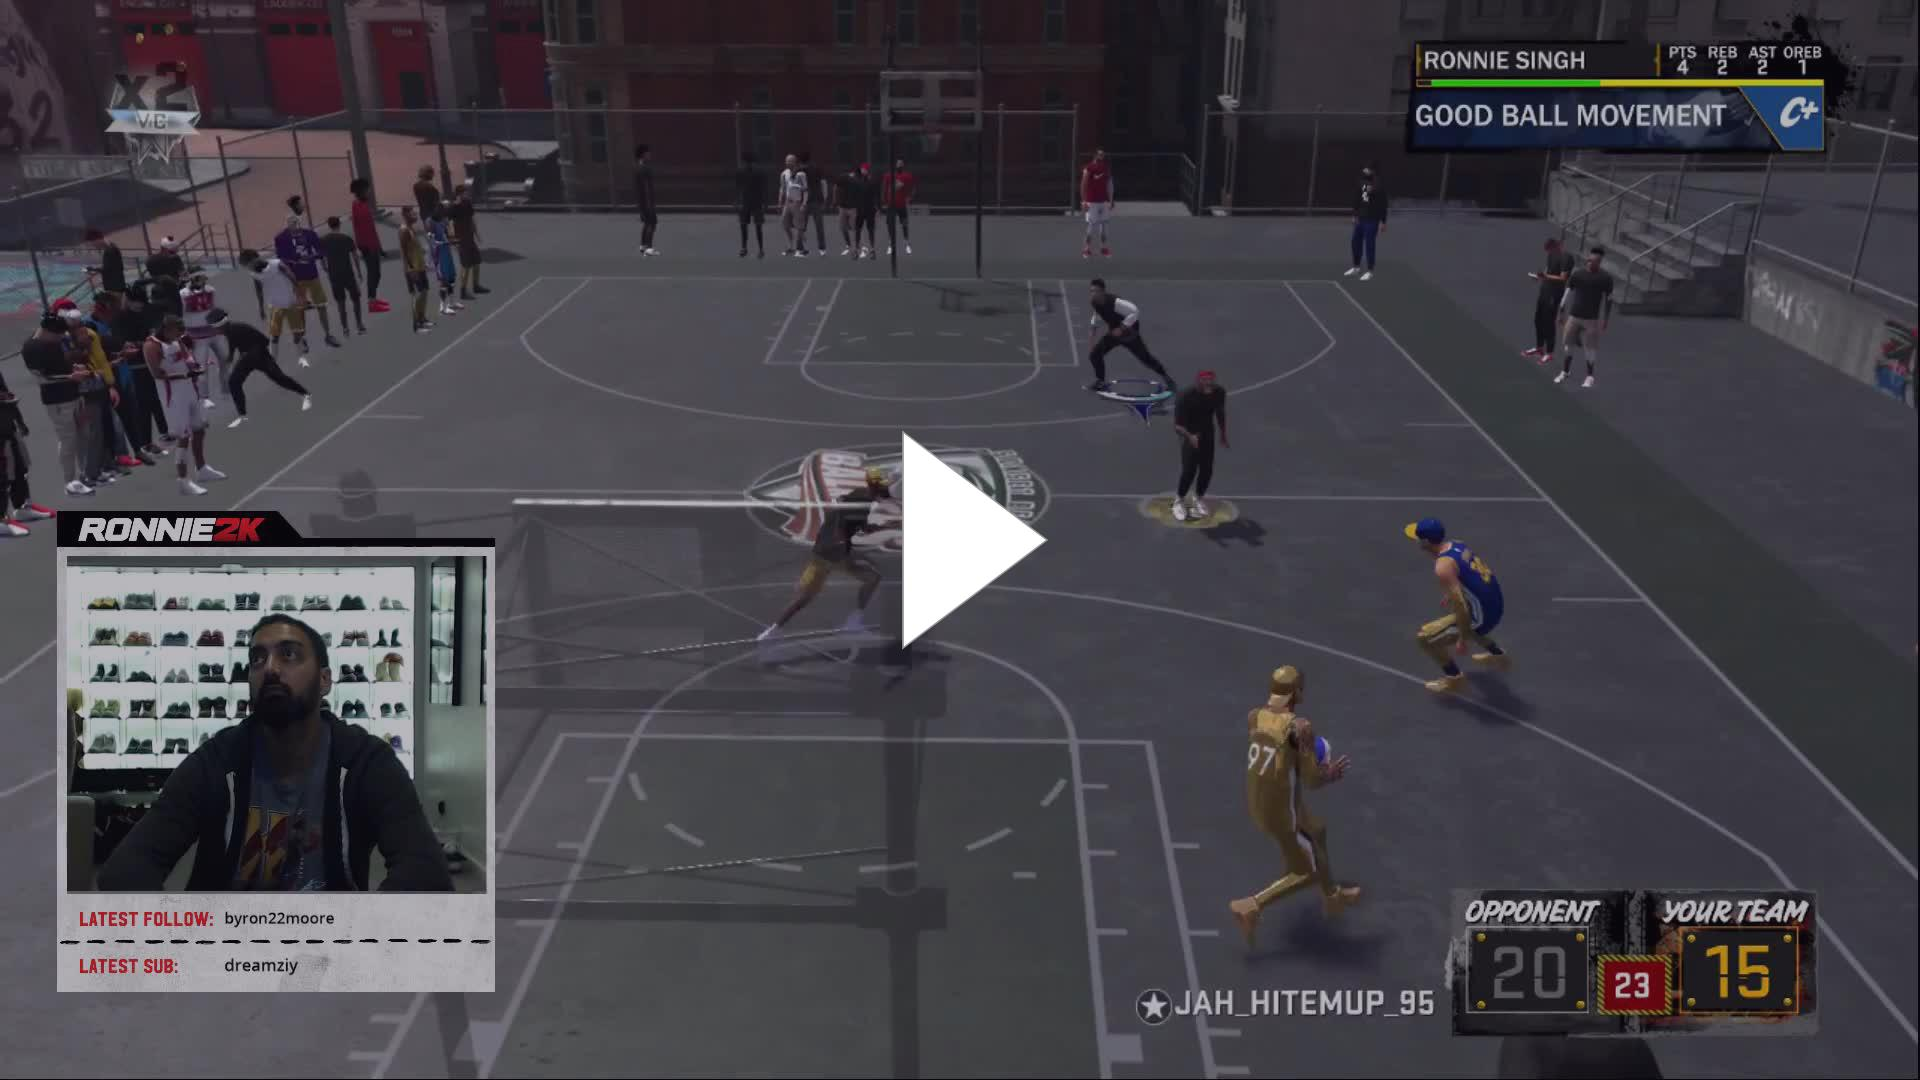 There IS a VC multiplier for difficulty in 2K19 - Twitch